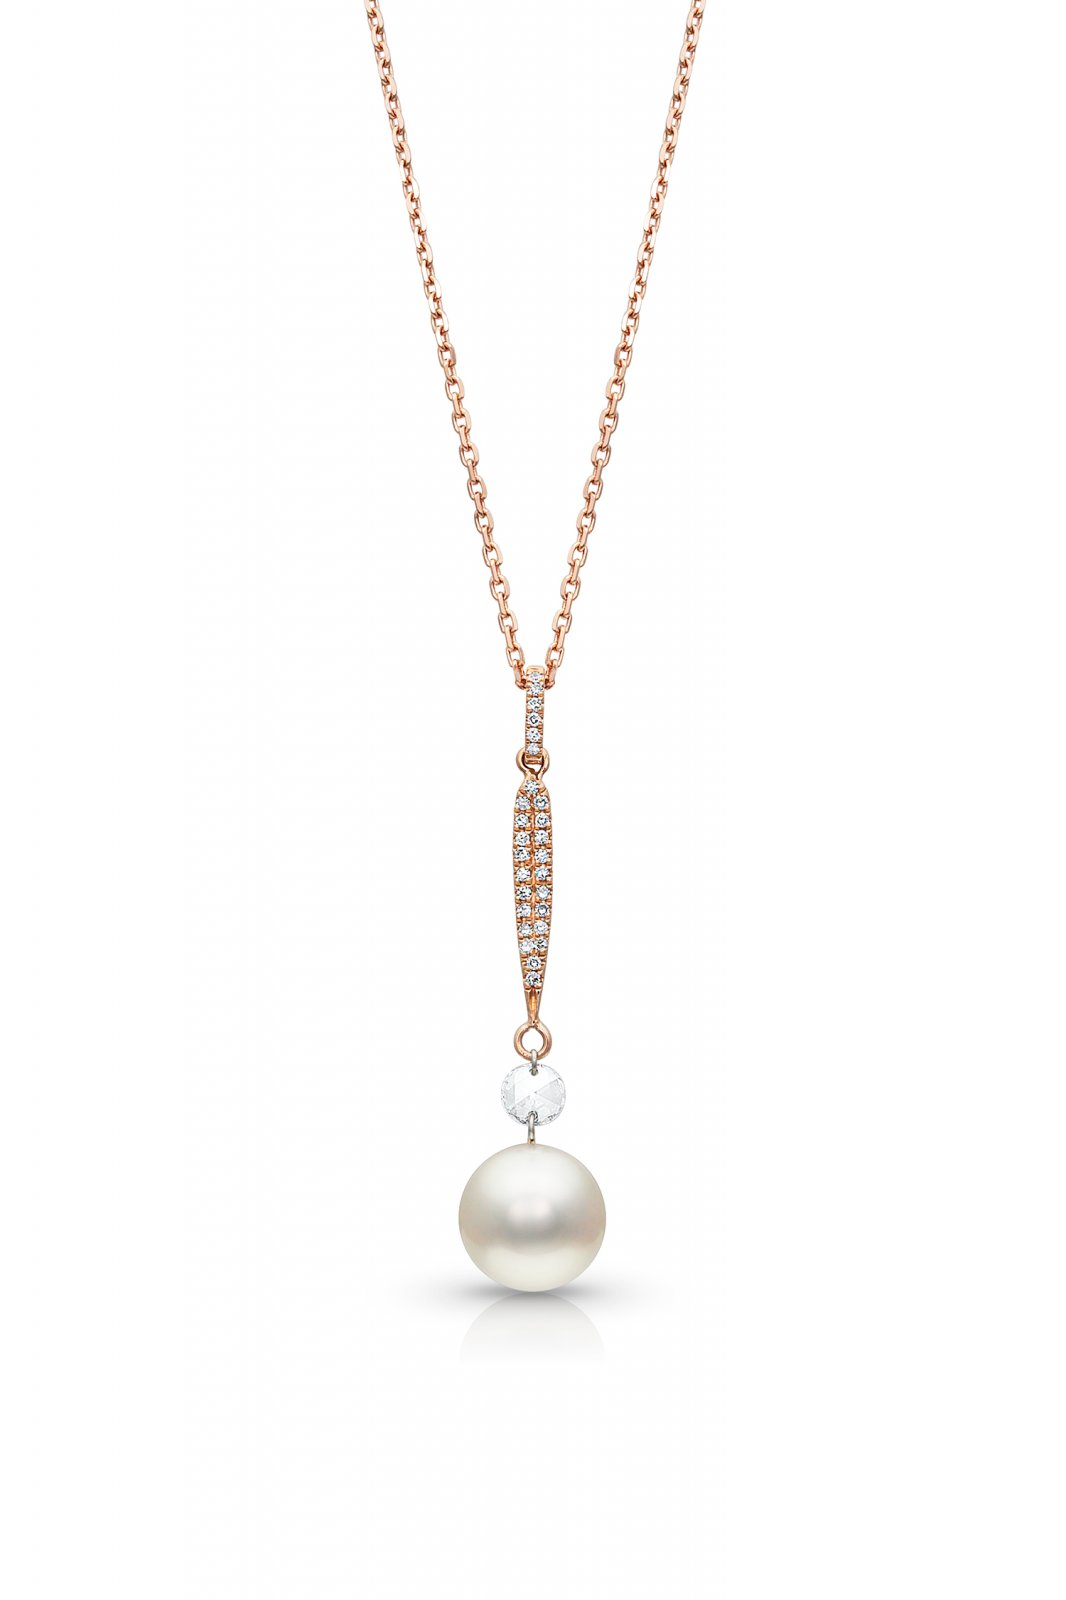 18 Akoya Cultured Pearl with Rose Cut Diamond Necklace set with 14k Rose Gold